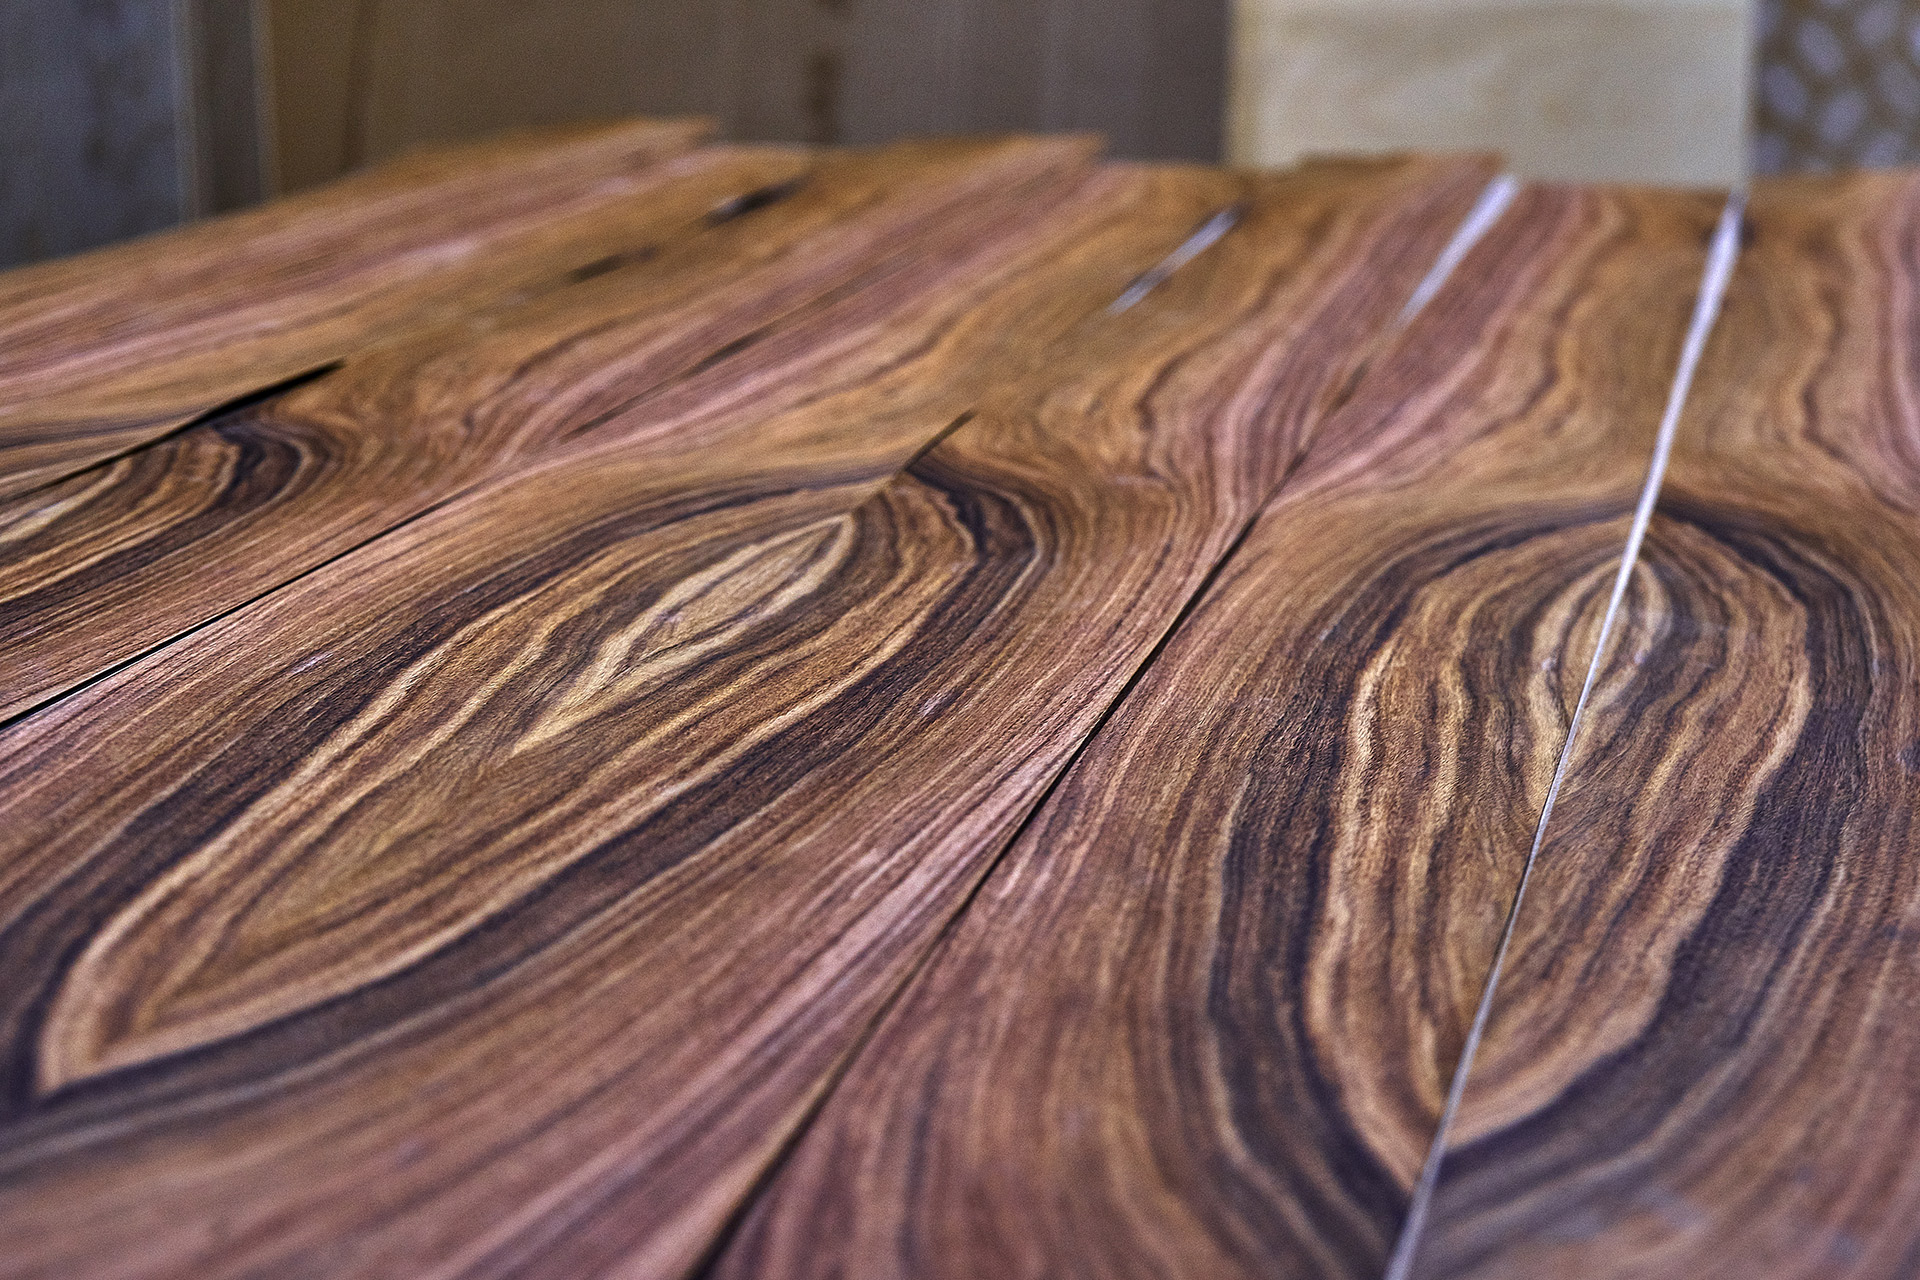 Rosewood, an essence with strong and exotic shades